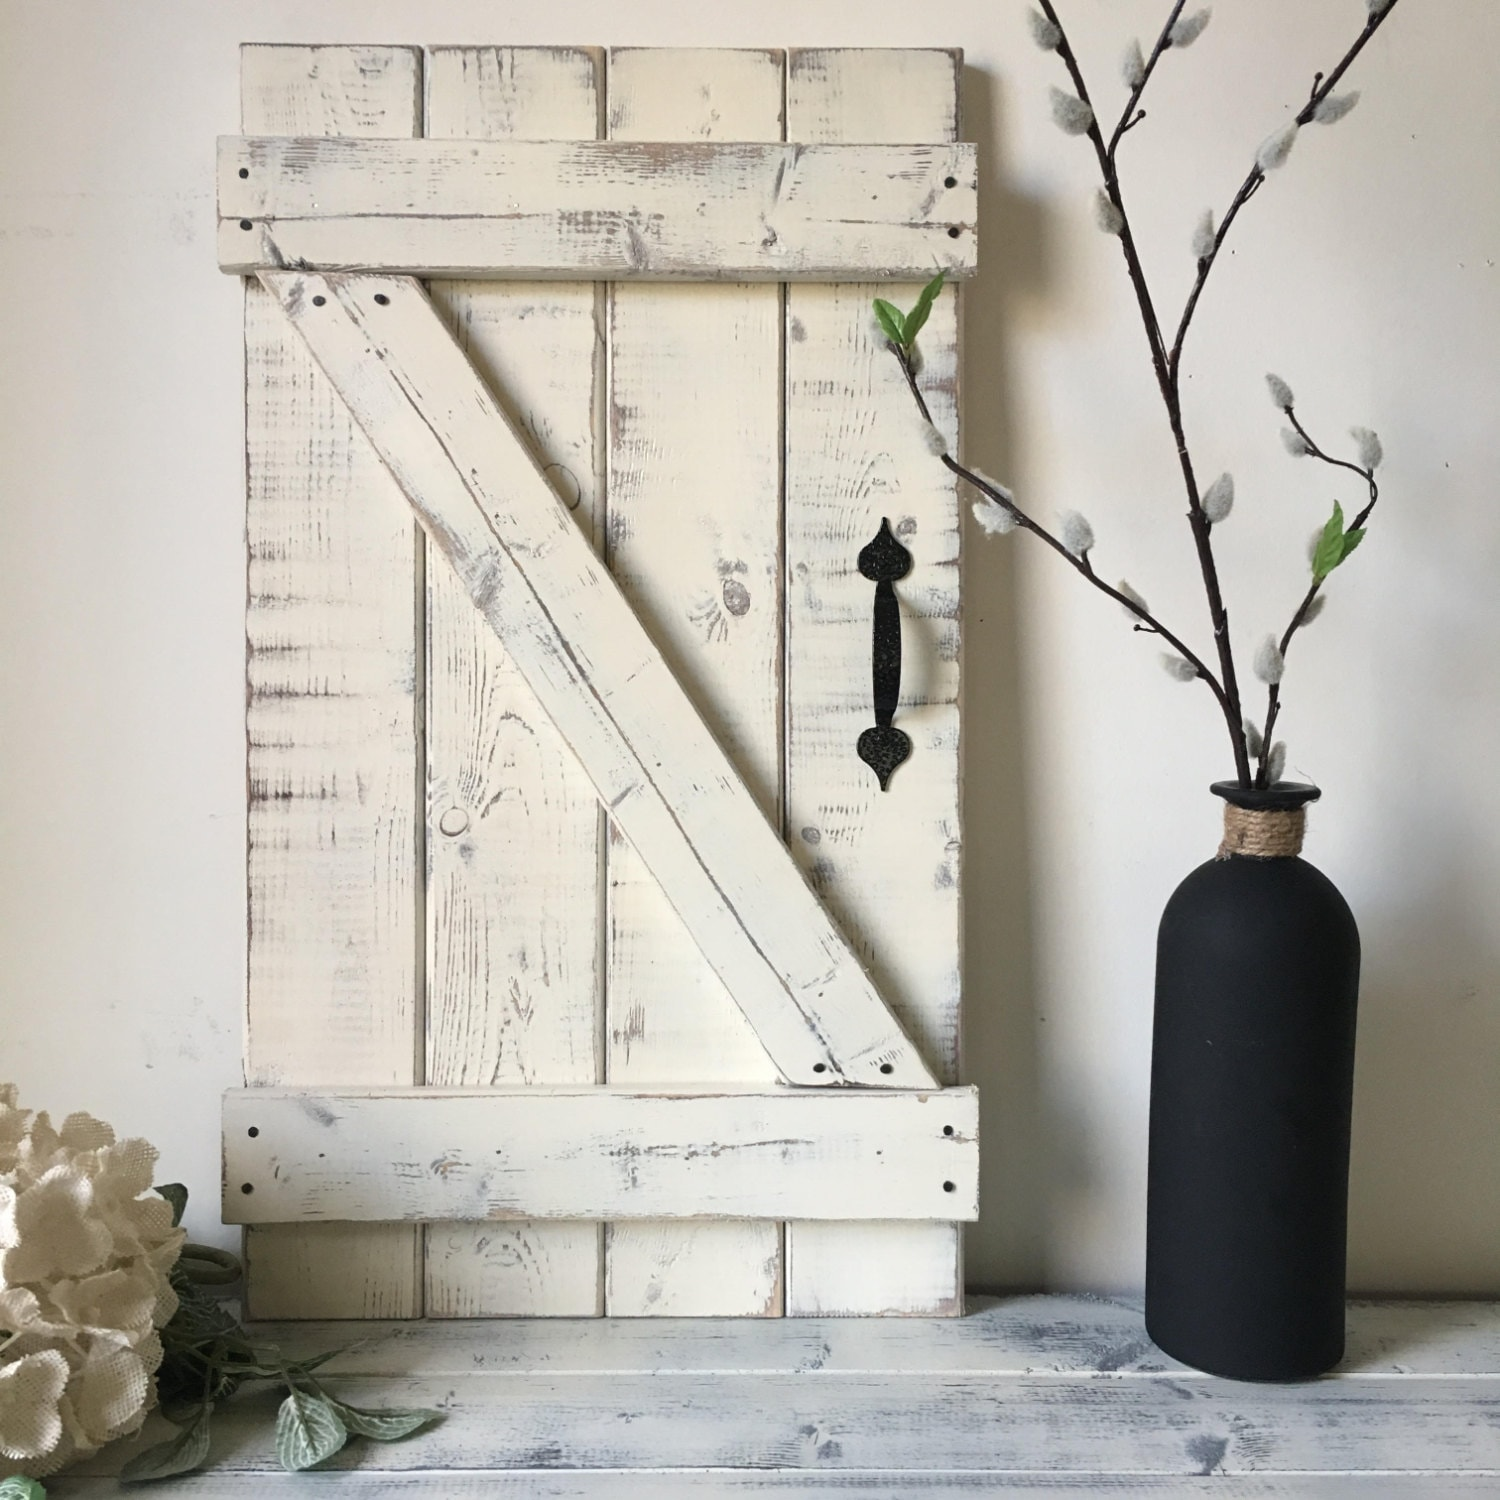 RUSTIC GALLERY WALL Rustic Shutter Fixer Upper Style Wood